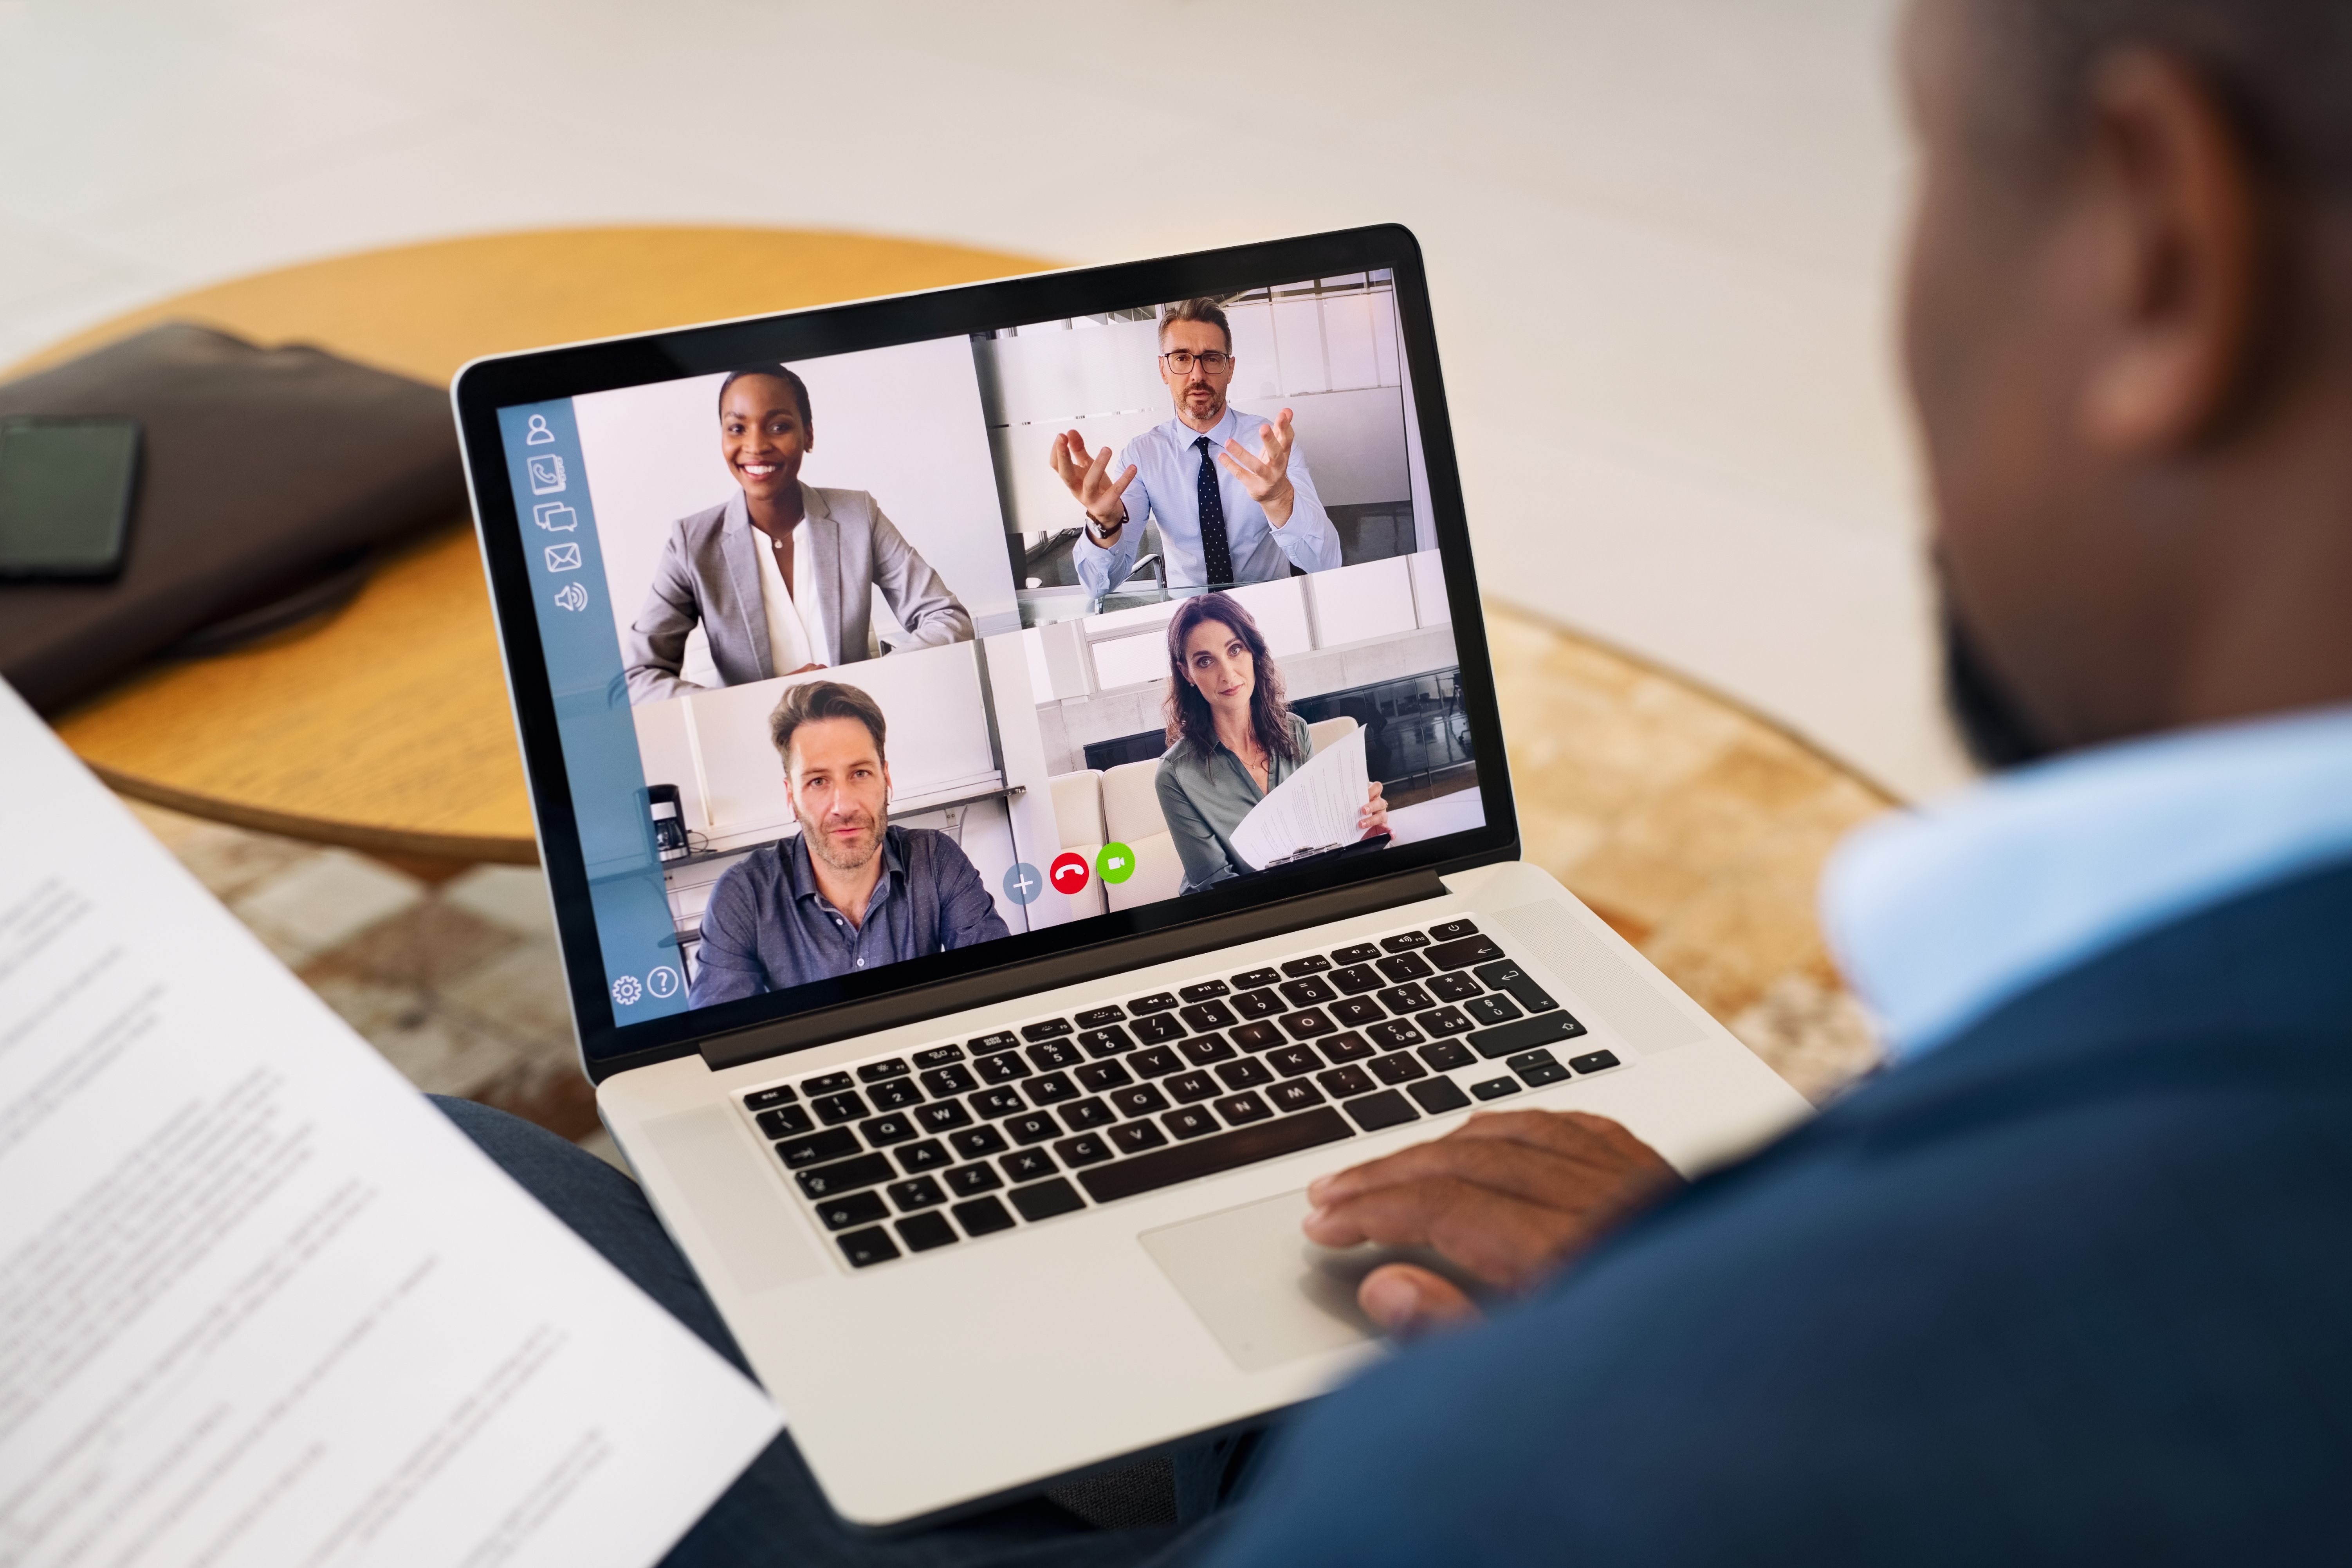 business-people-working-with-video-call-from-remot-WGHBC9E